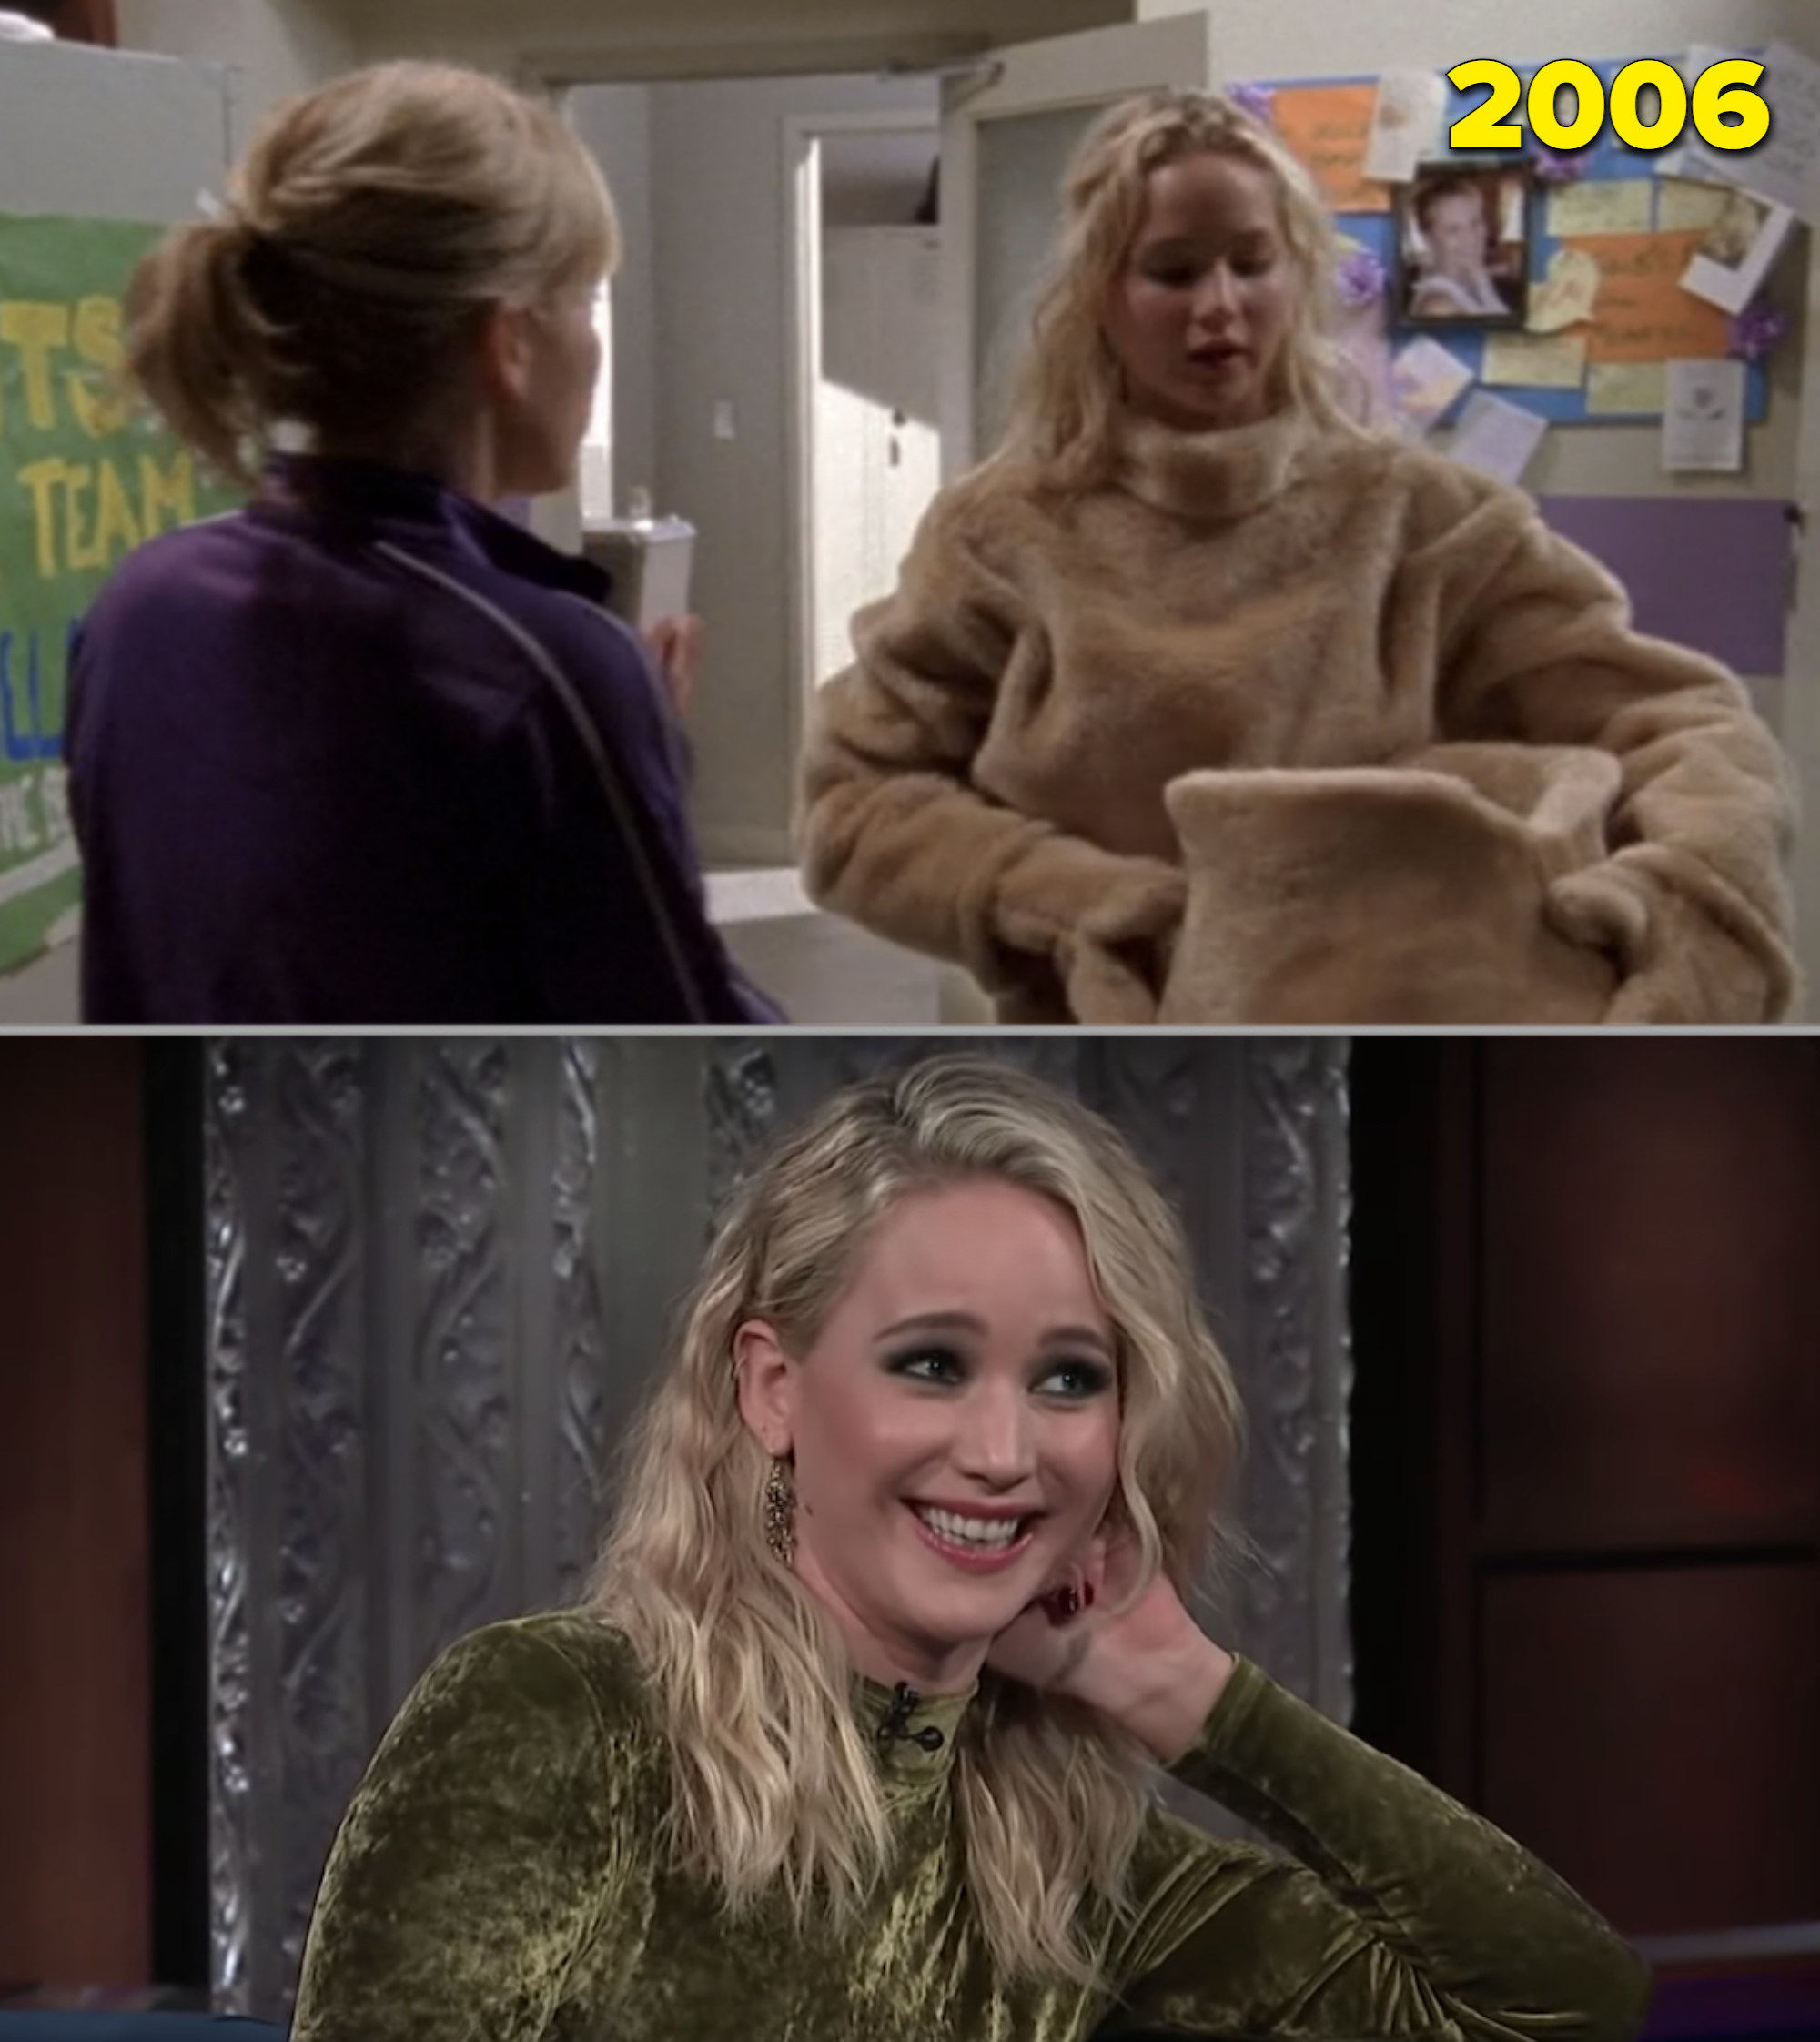 """Jennifer Lawrence in a bear costume on """"Monk"""" vs. her being interviewed as an adult"""